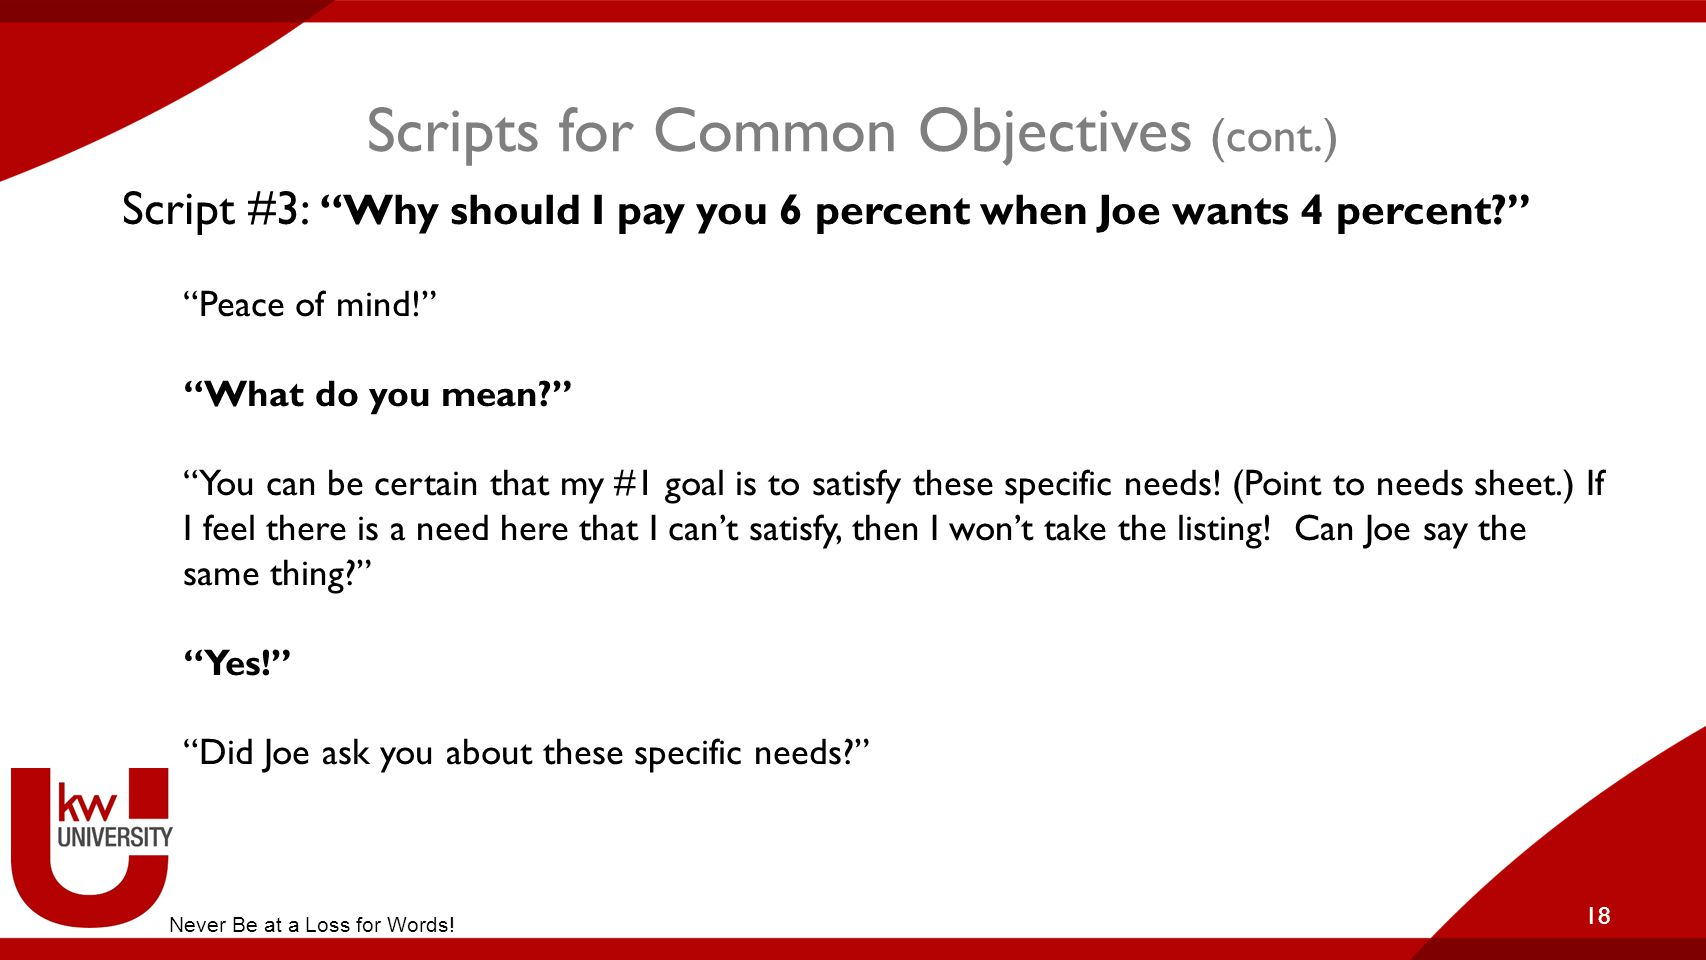 Scripts for Common Objectives (cont.)